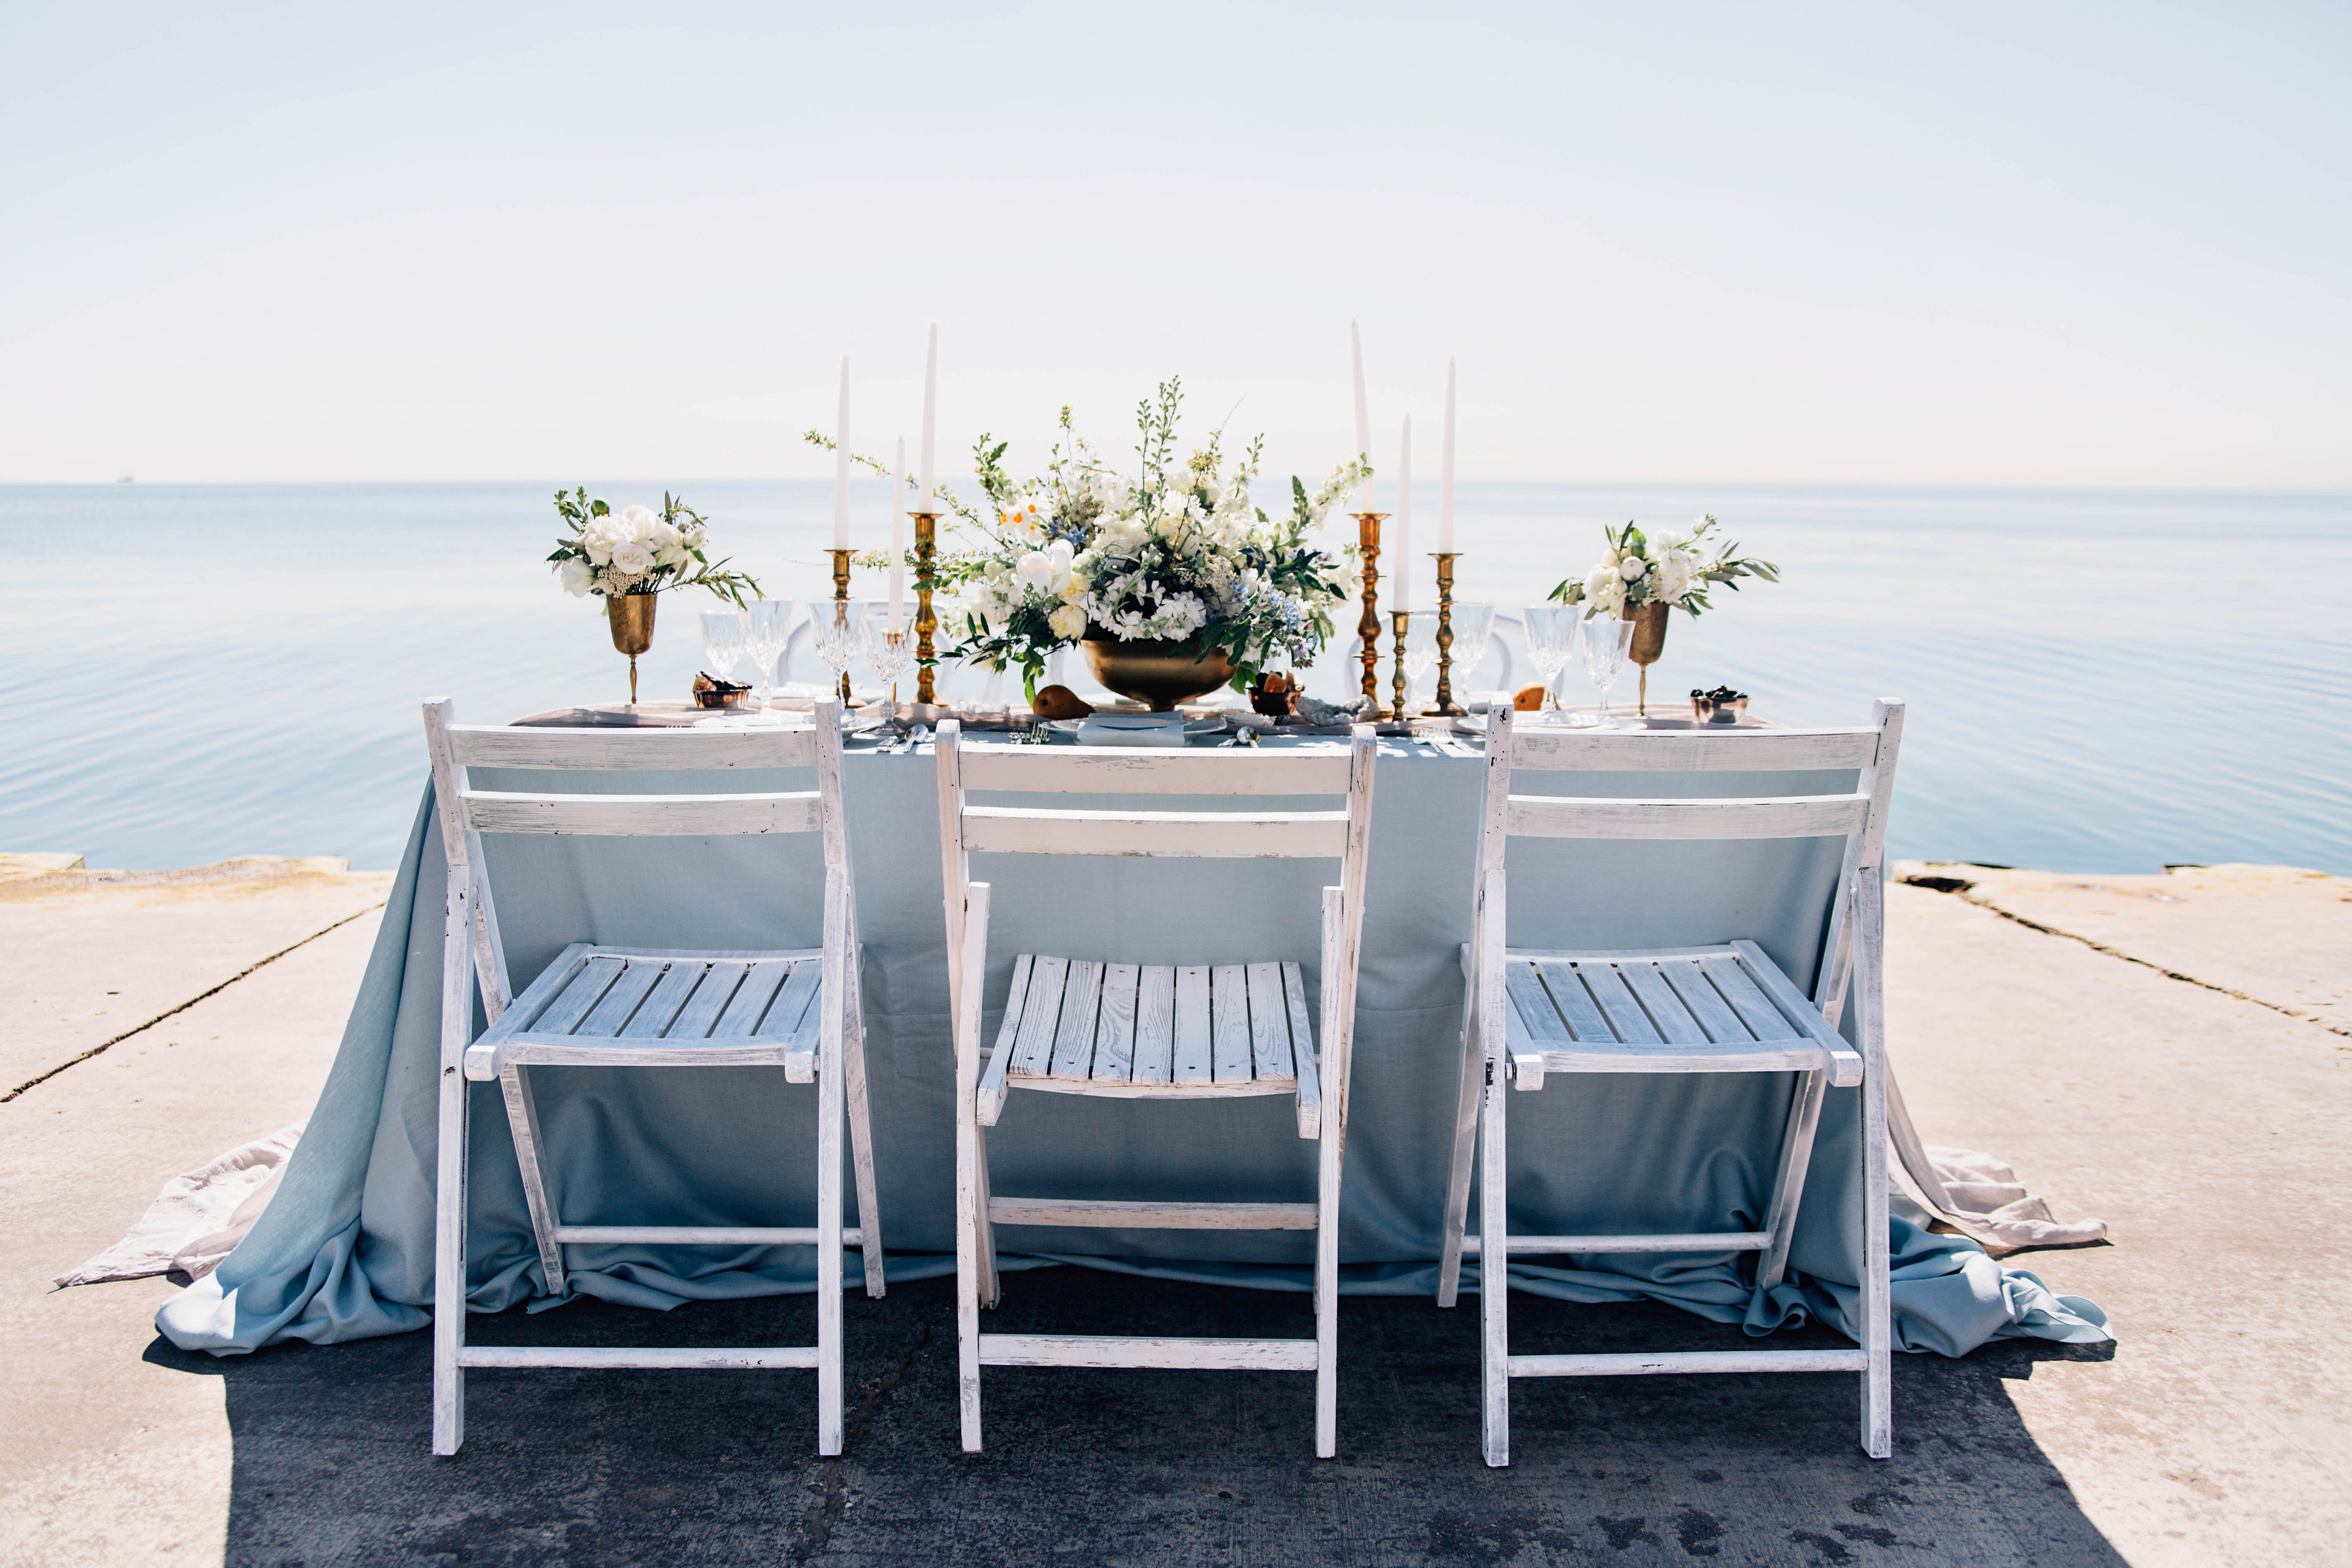 Tablescape with sky blue natural linen, hand-died silk table runner, vintage tabletop elements and distressed white folding chairs with lakefront backdrop.